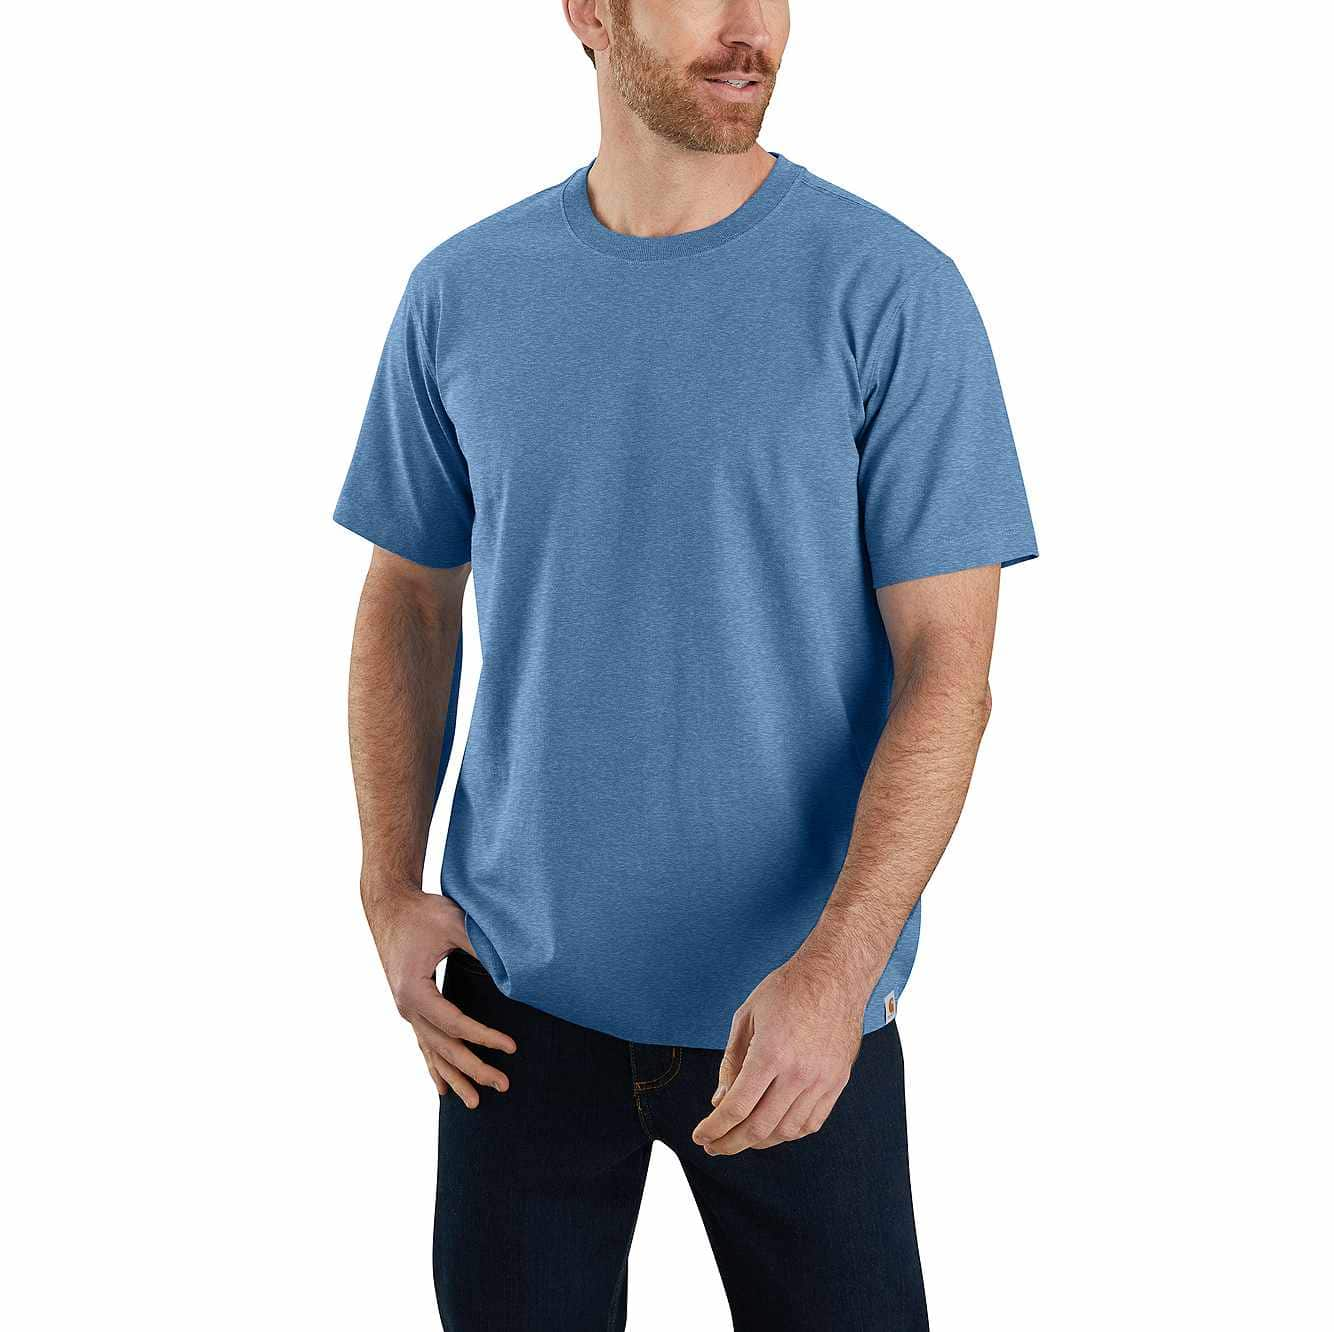 Picture of Relaxed Fit Heavyweight Non-Pocket T-Shirt in Coastal Heather